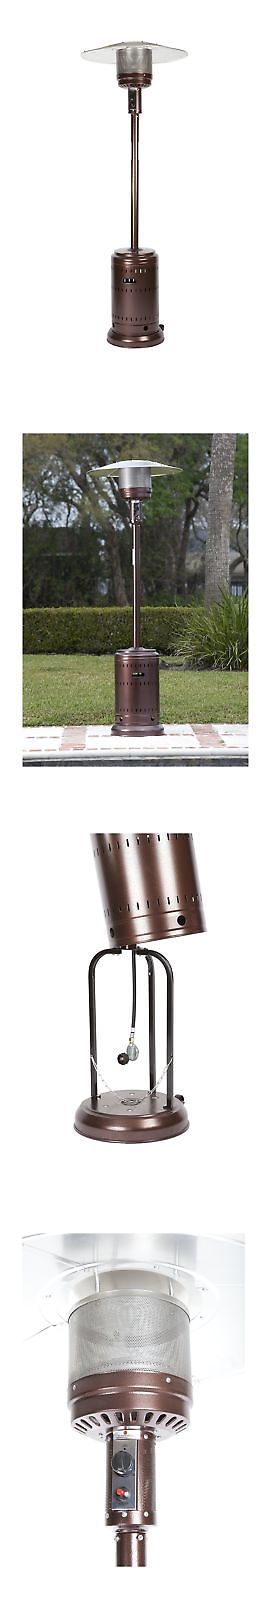 Patio Heaters 106402: Fire Sense Hammer Tone Bronze Commercial Patio Heater  New  U003e BUY